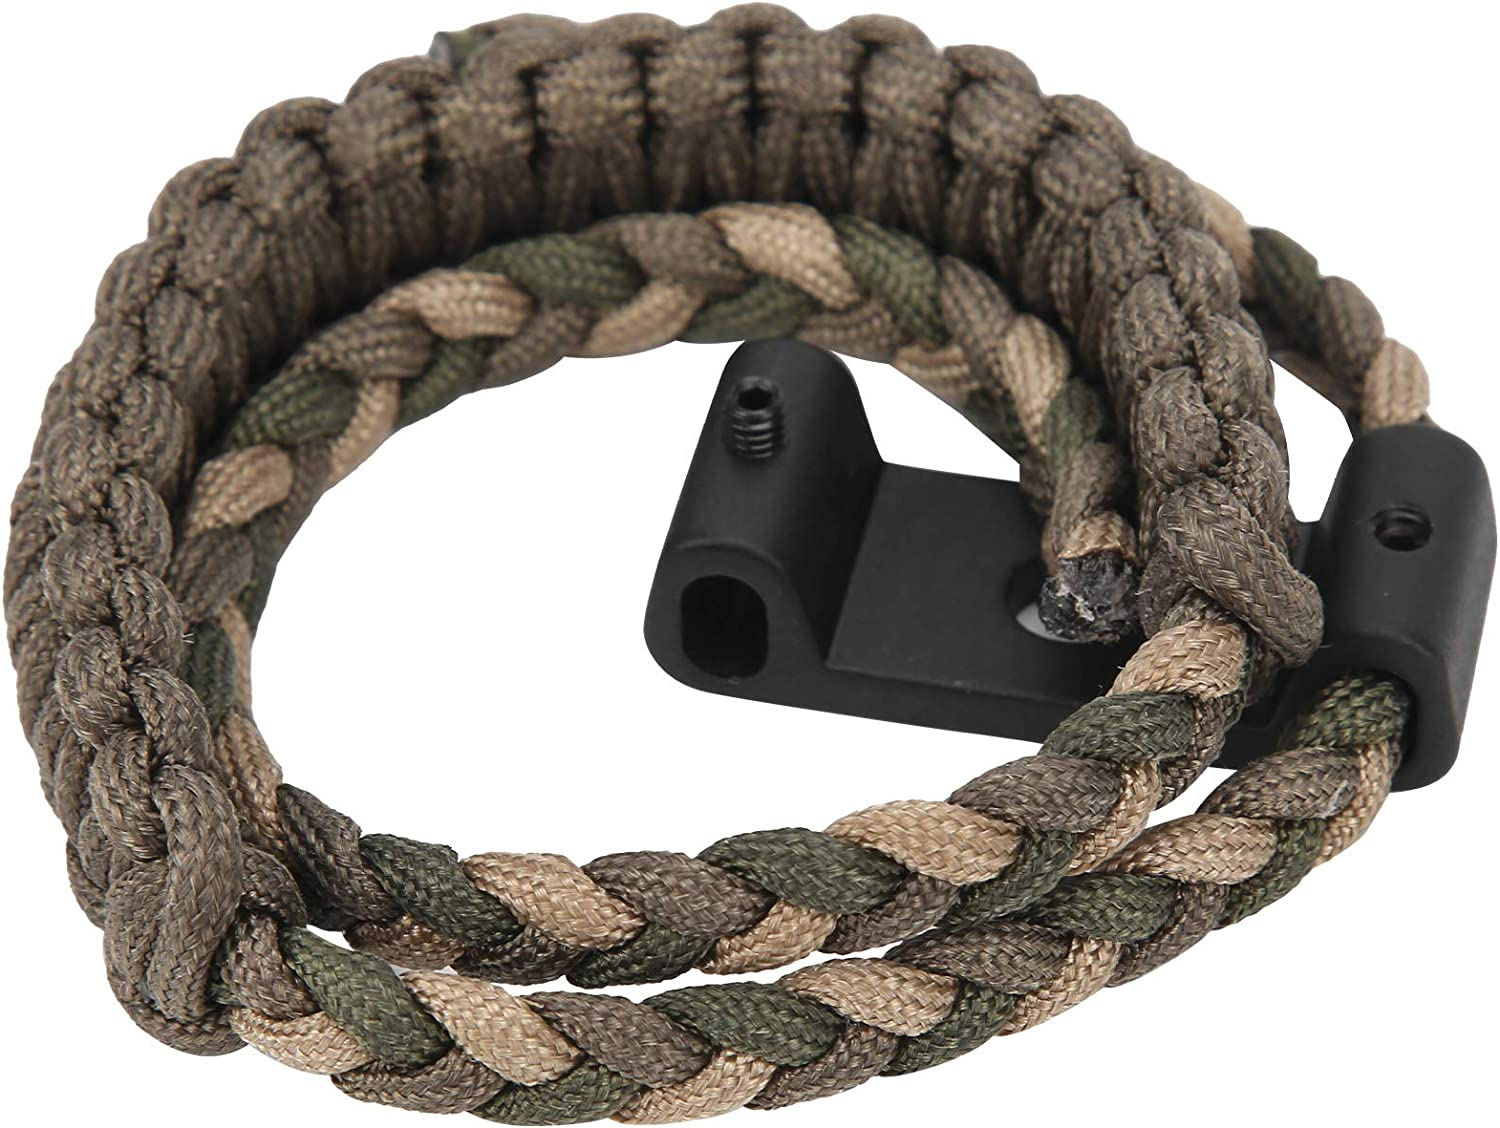 Velaurs Bow Wrist Sling Camouflage Strap with lowest price Phoenix Mall